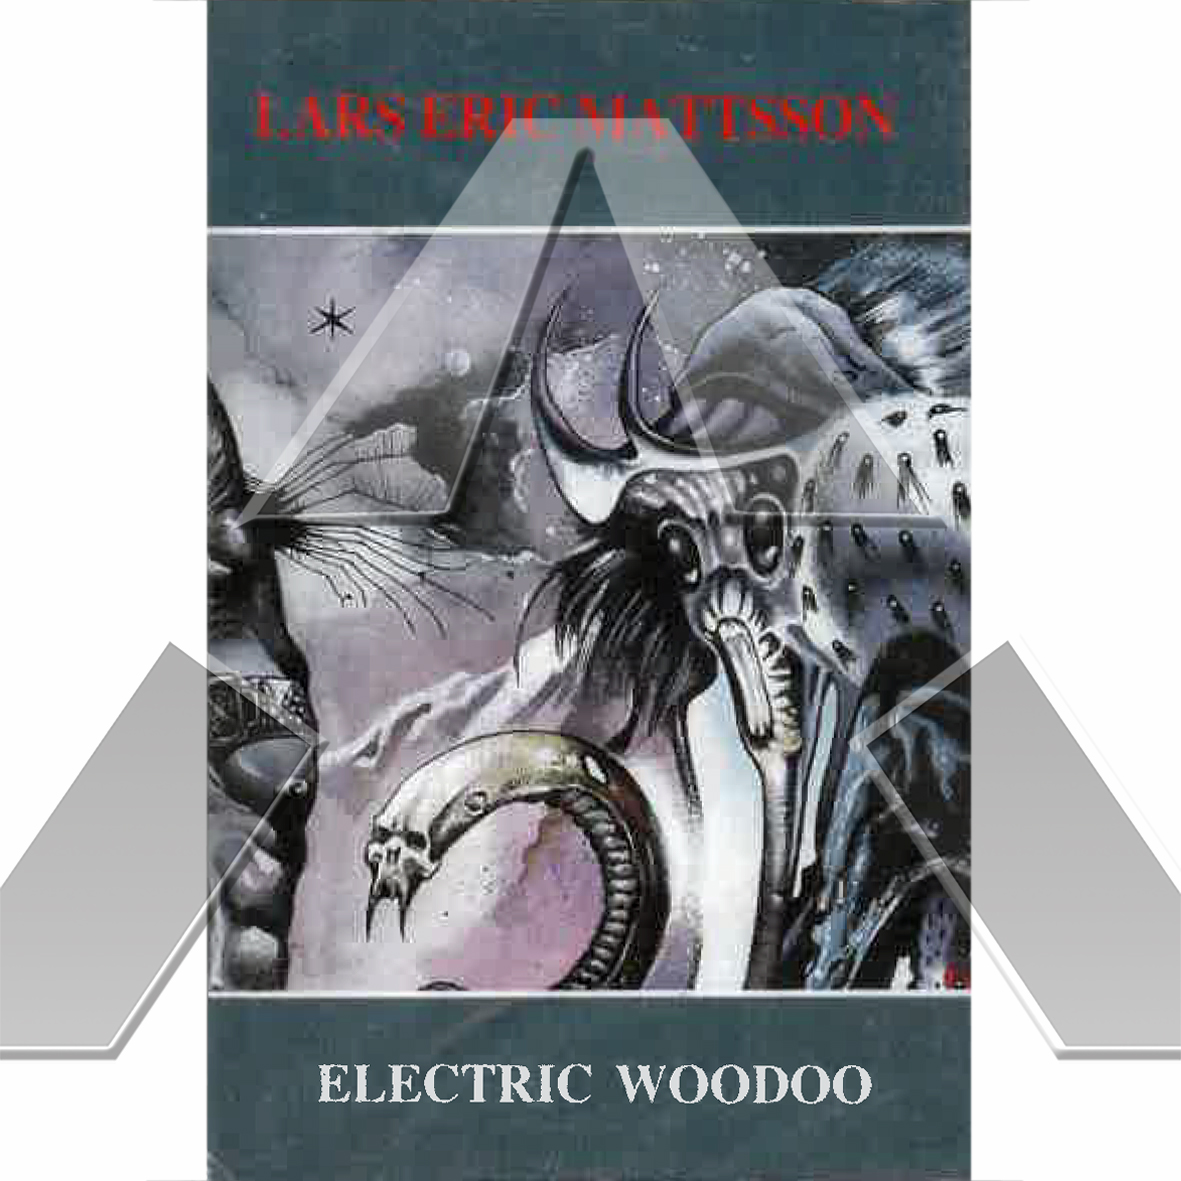 Lars Eric Mattsson ★ Electric Woodoo (c-cassette EU)